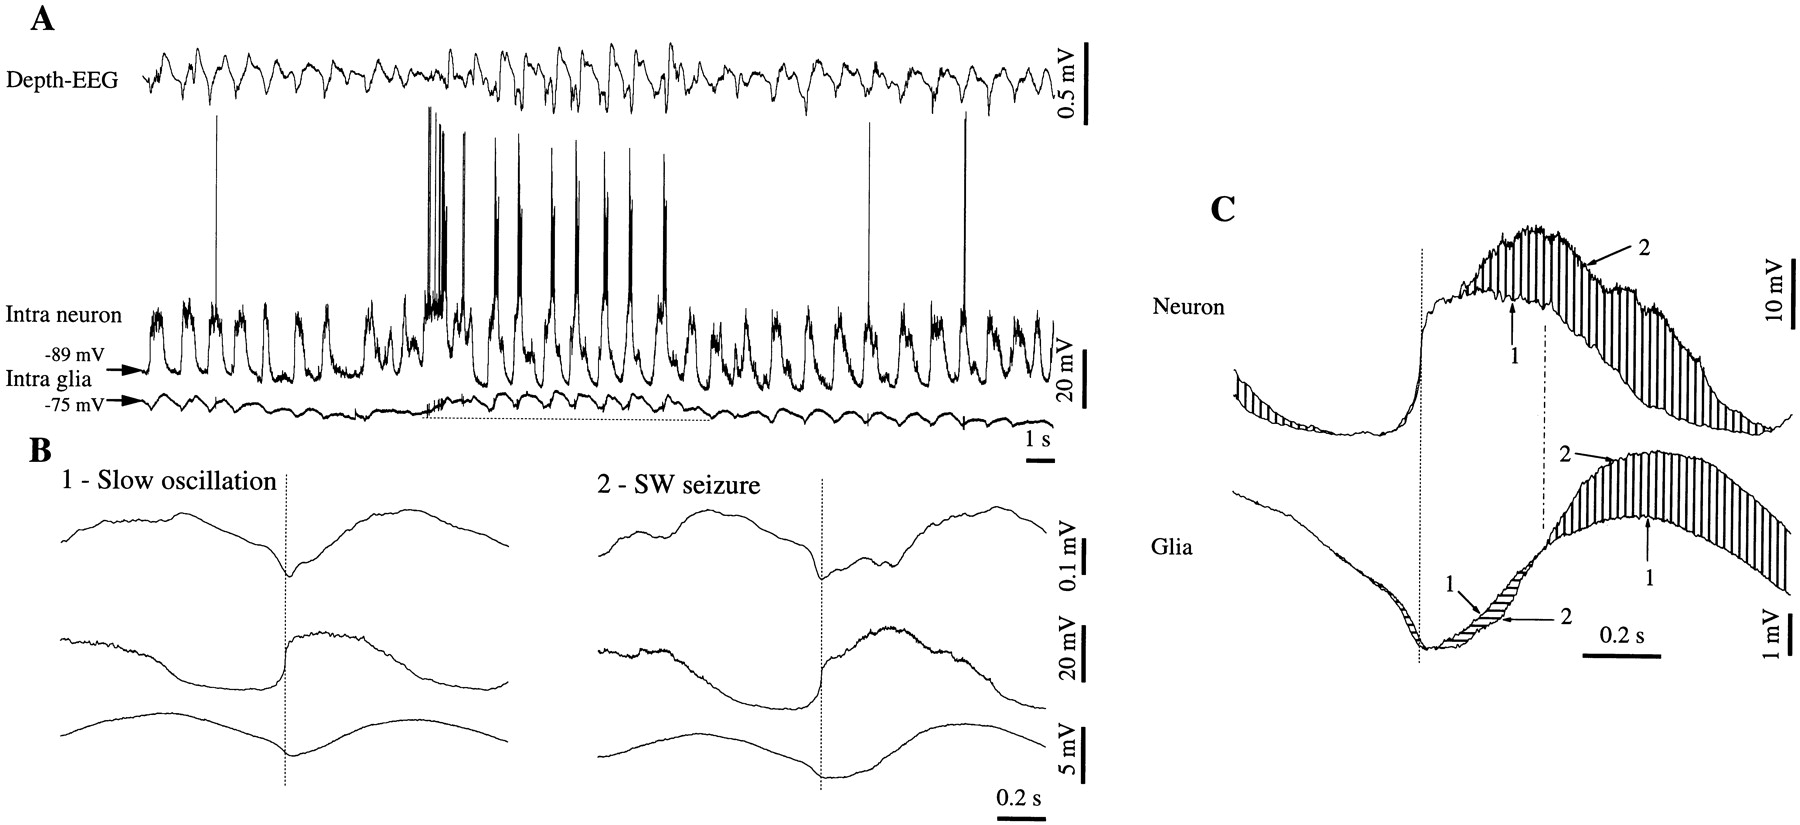 Neuronal and Glial Membrane Potentials during Sleep and Paroxysmal